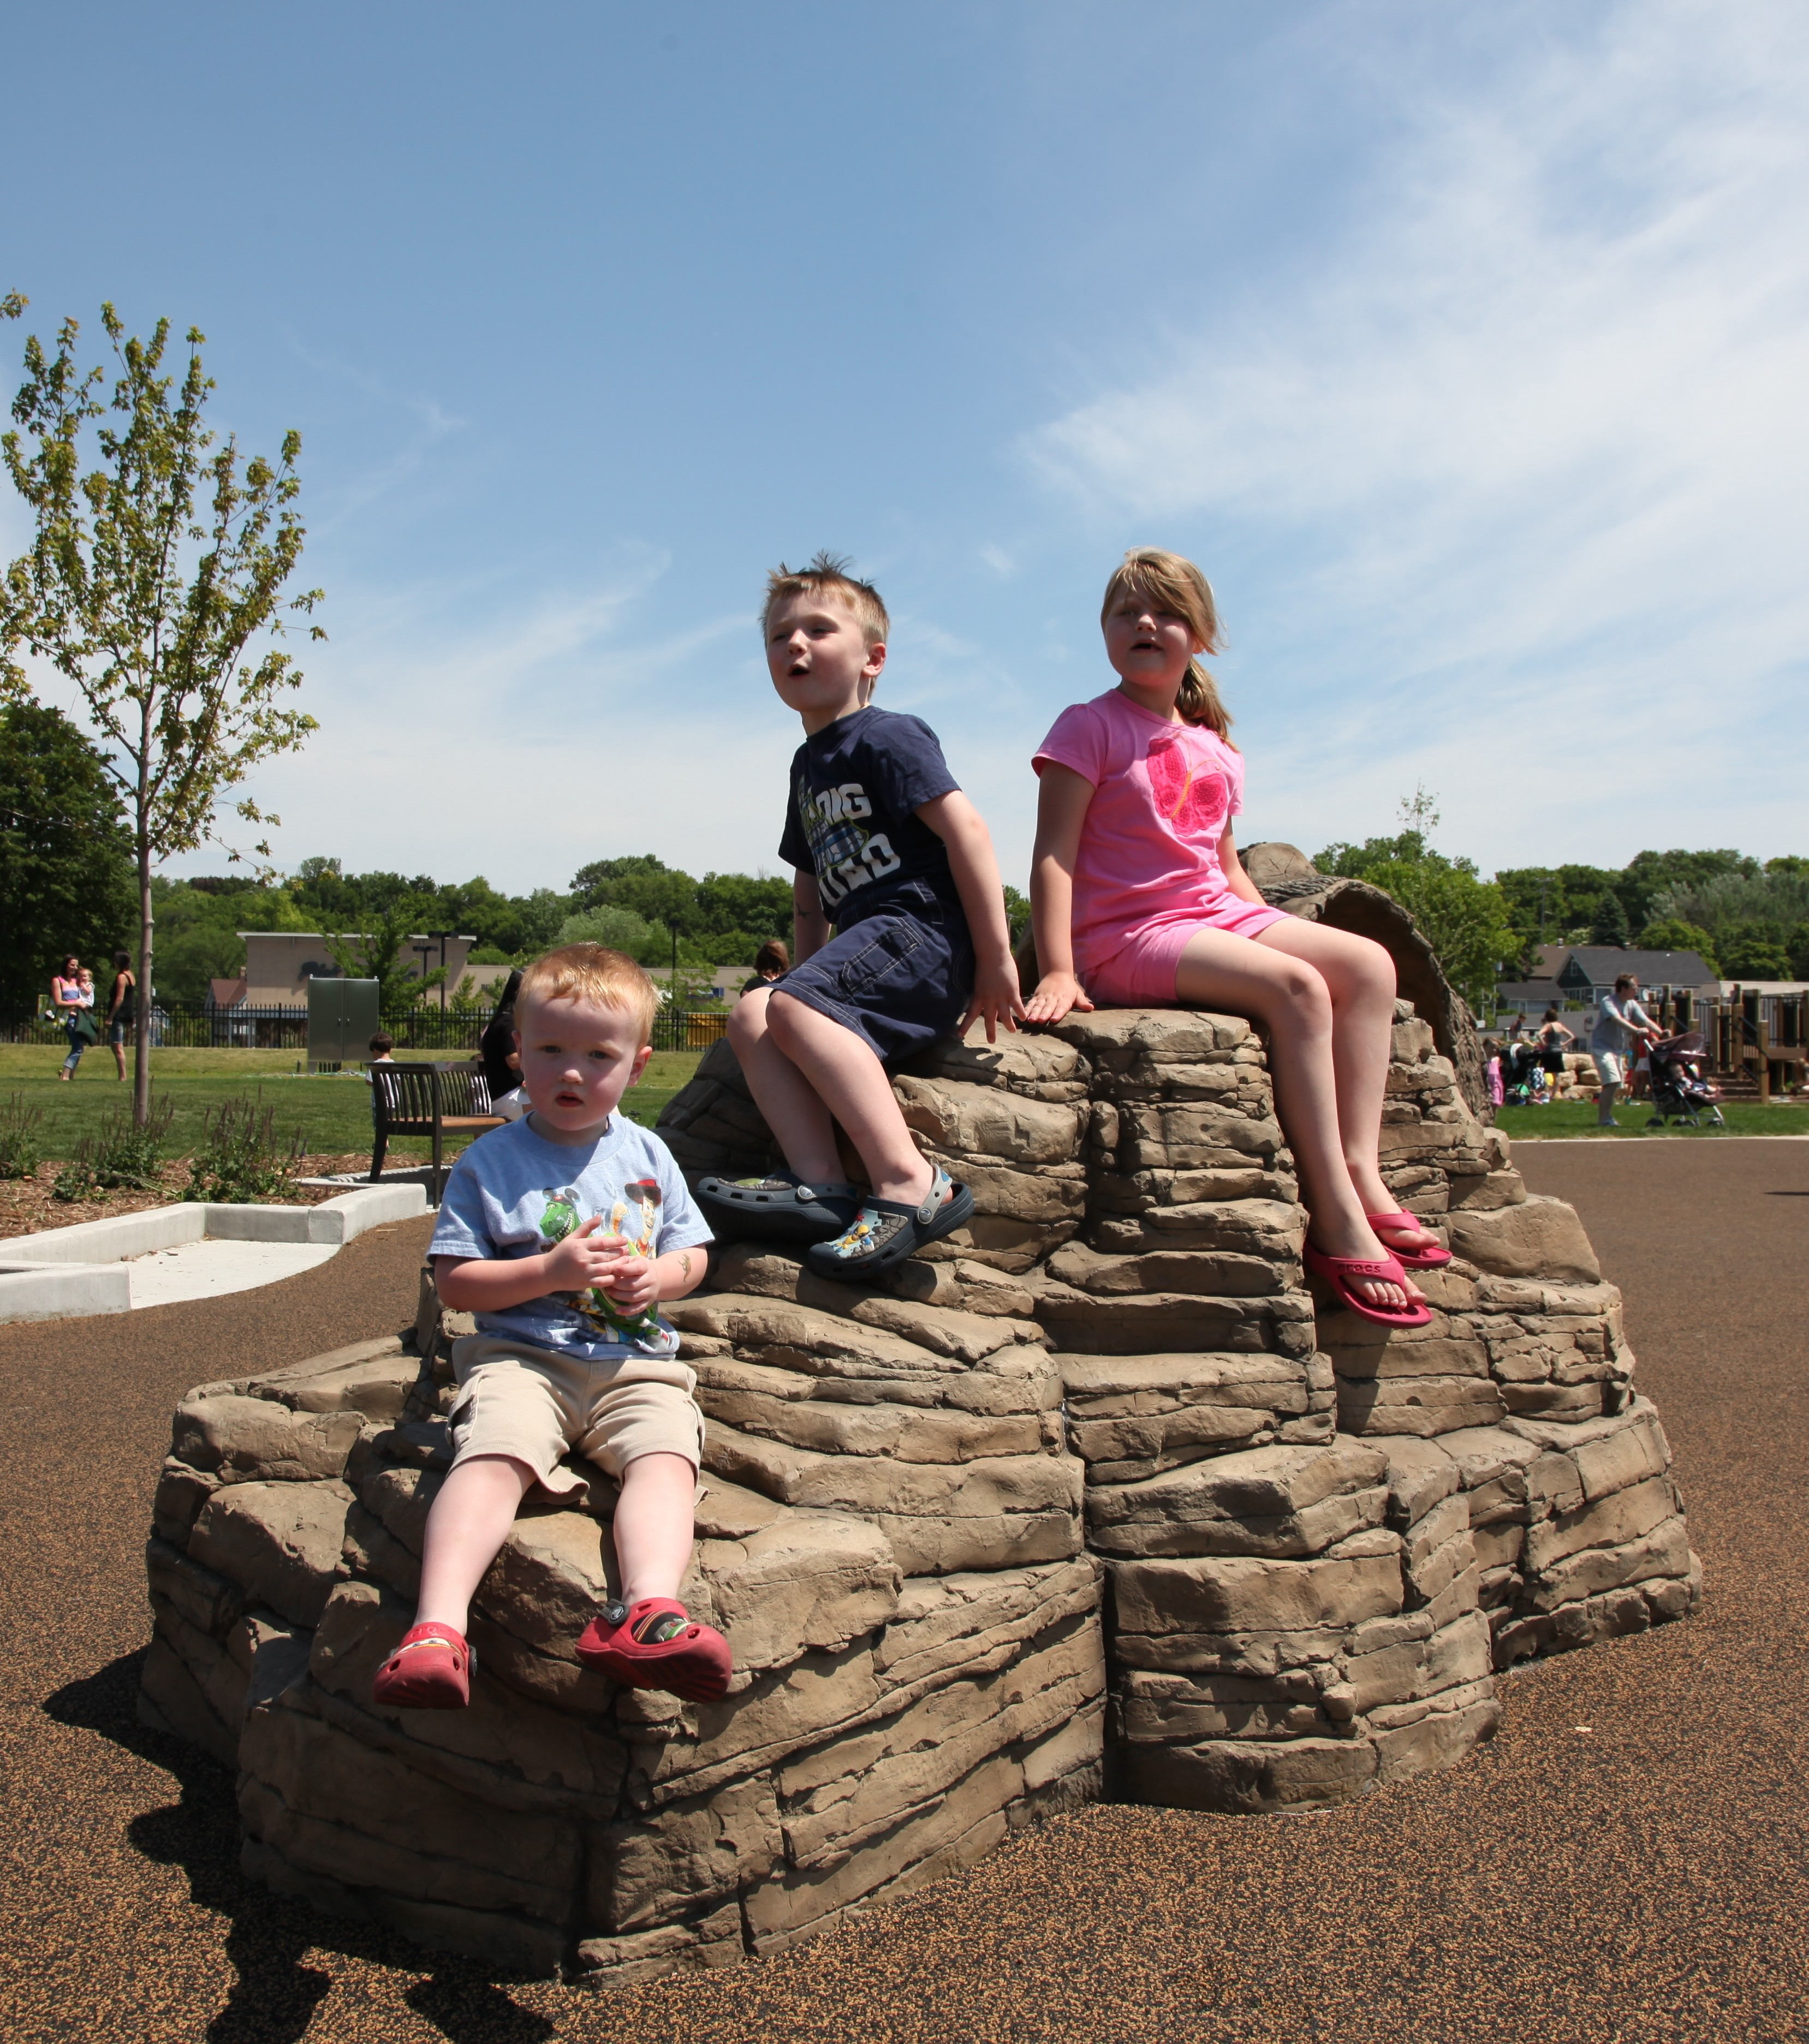 Kids sit on a rock in a nature-themed playground in Hart Park, Wauwatosa, WI.